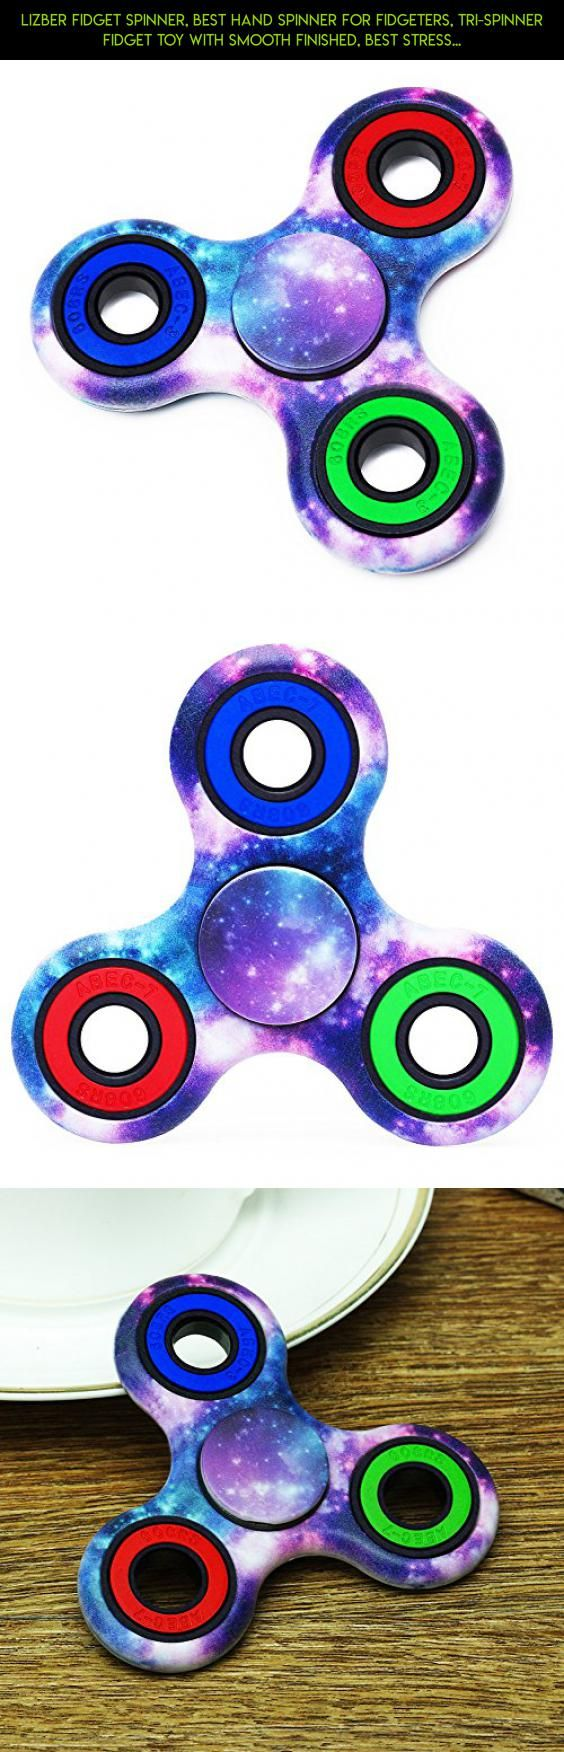 Lizber Fidget Spinner, Best Hand Spinner for Fidgeters, Tri-Spinner Fidget Toy with Smooth Finished, Best Stress Reducer Toy for ADHD, ADD, Autism, and Killing Time - Camouflage Starry Sky + Colorful #autism #racing #kit #fpv #drone #shopping #products #parts #technology #tech #gadgets #plans #camera #spinner